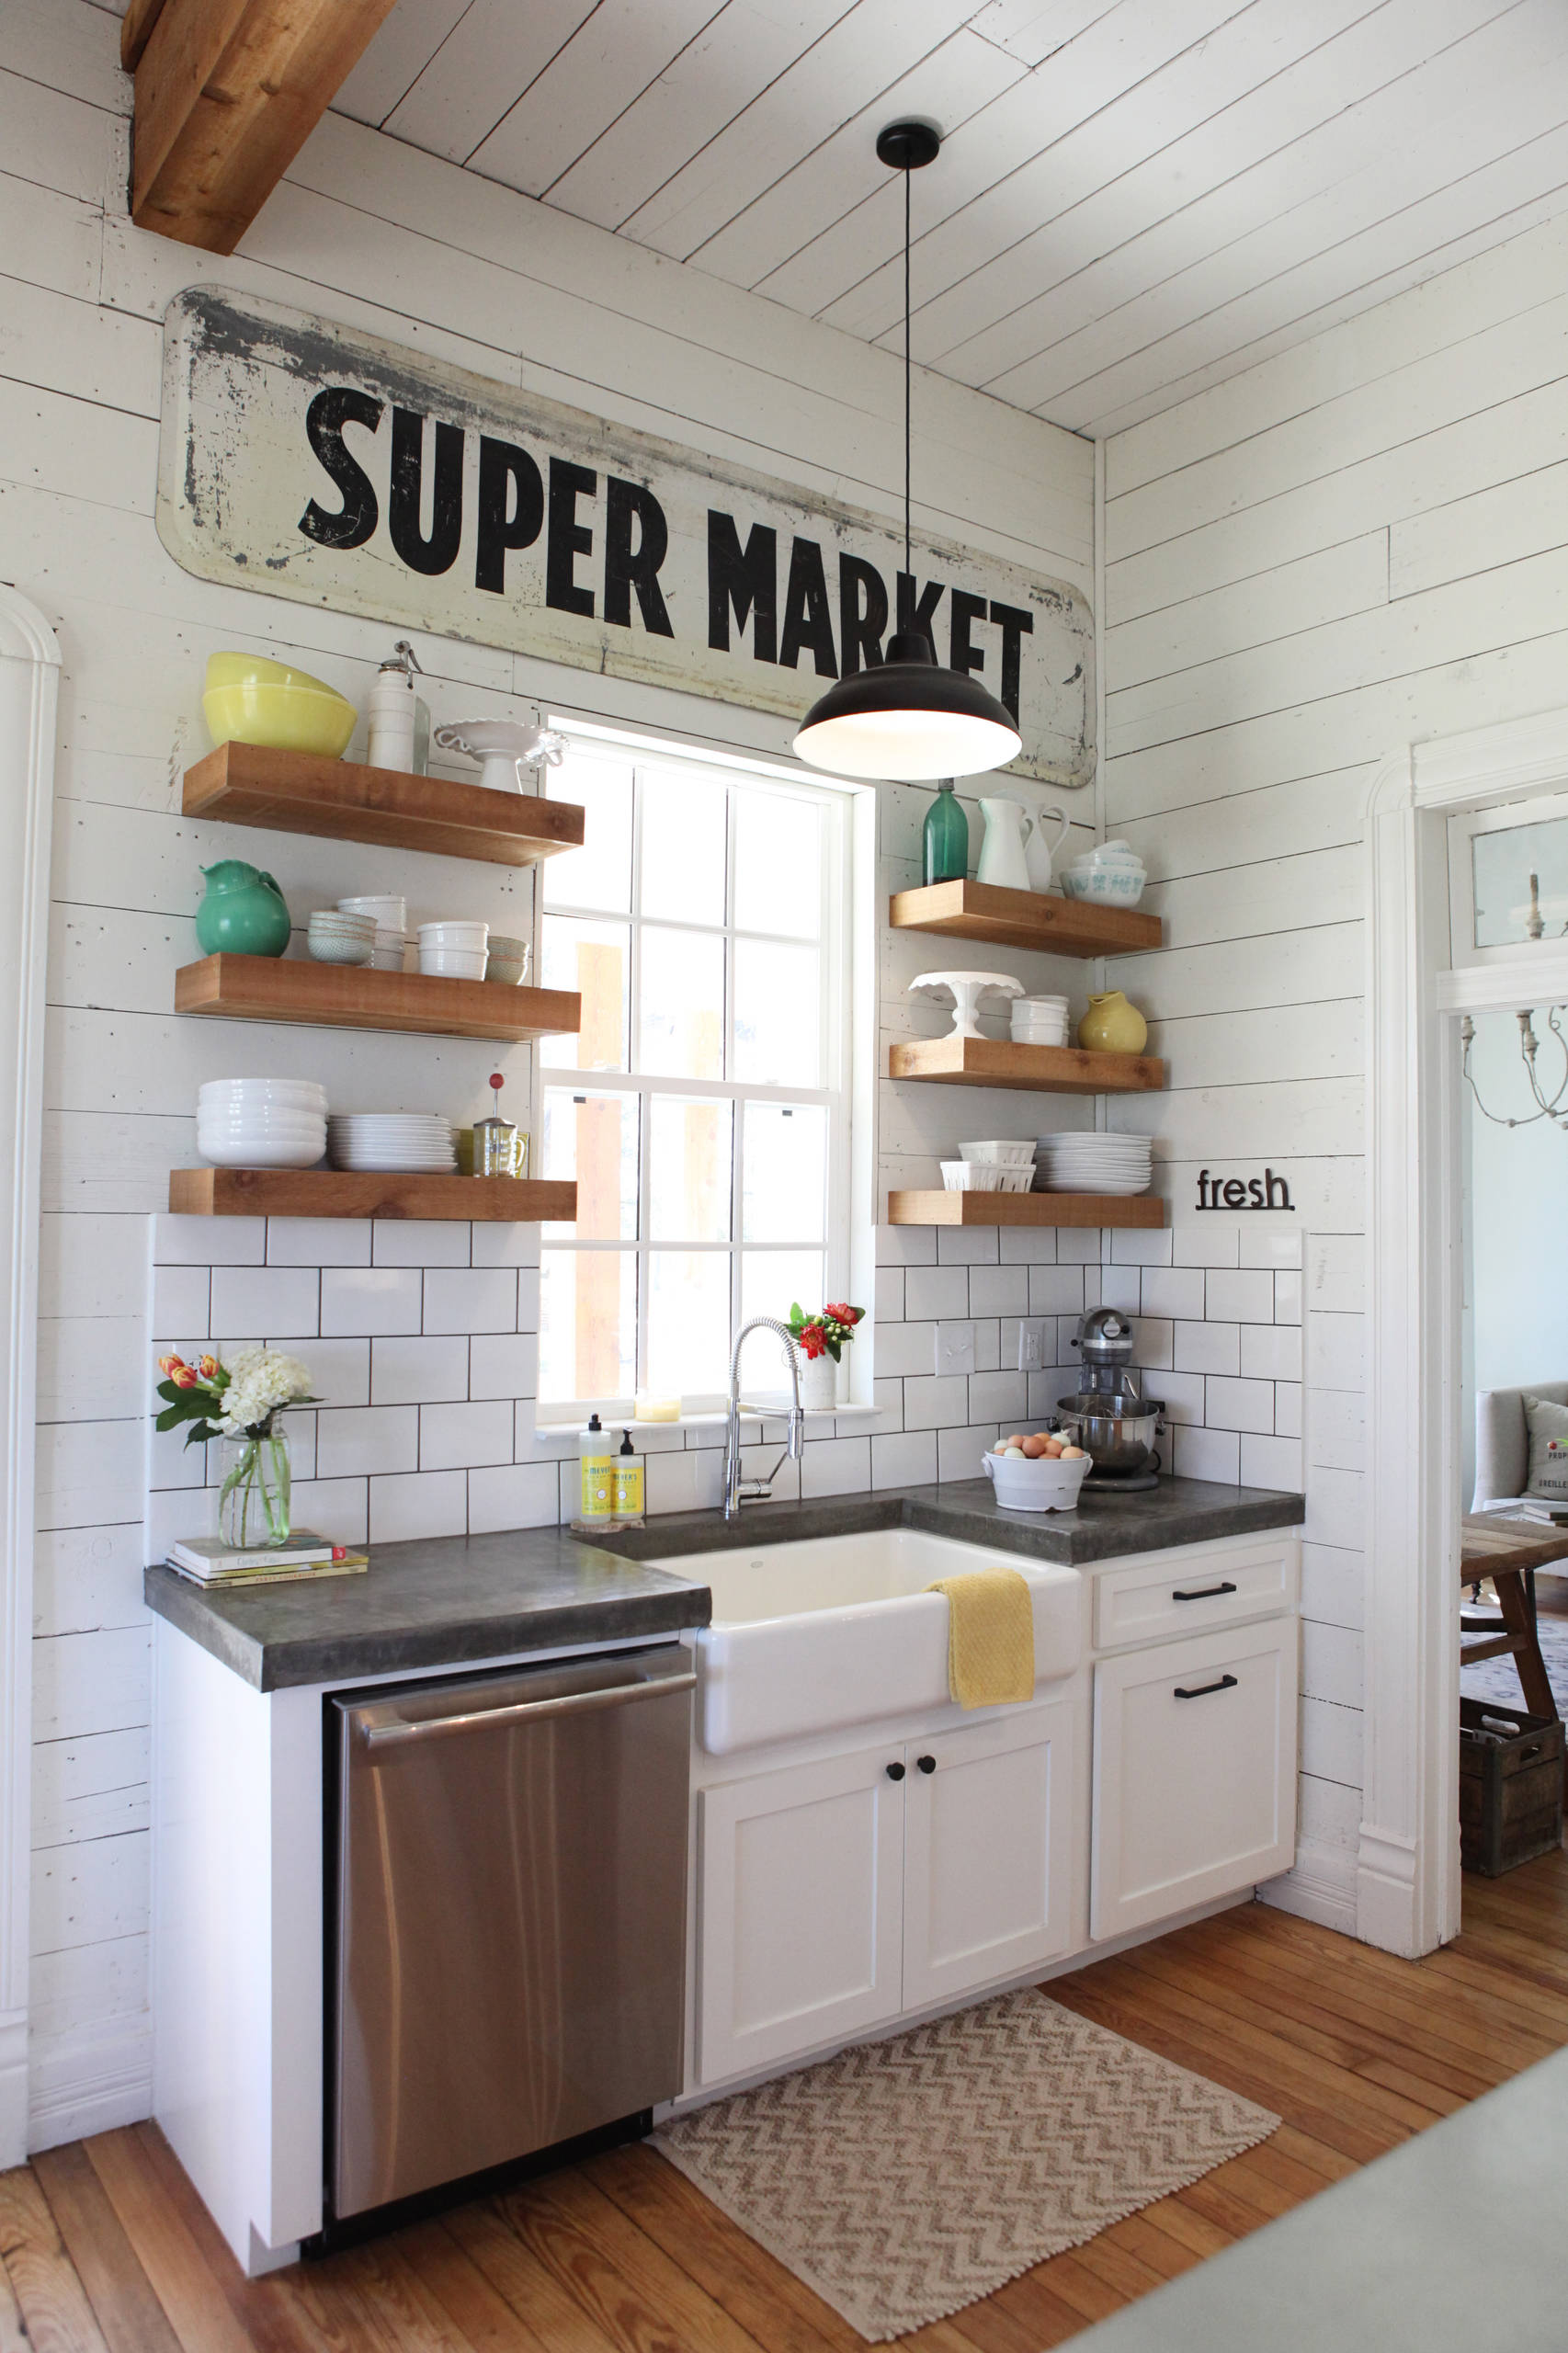 75 Beautiful Kitchen With Open Cabinets And Concrete Countertops Pictures Ideas January 2021 Houzz